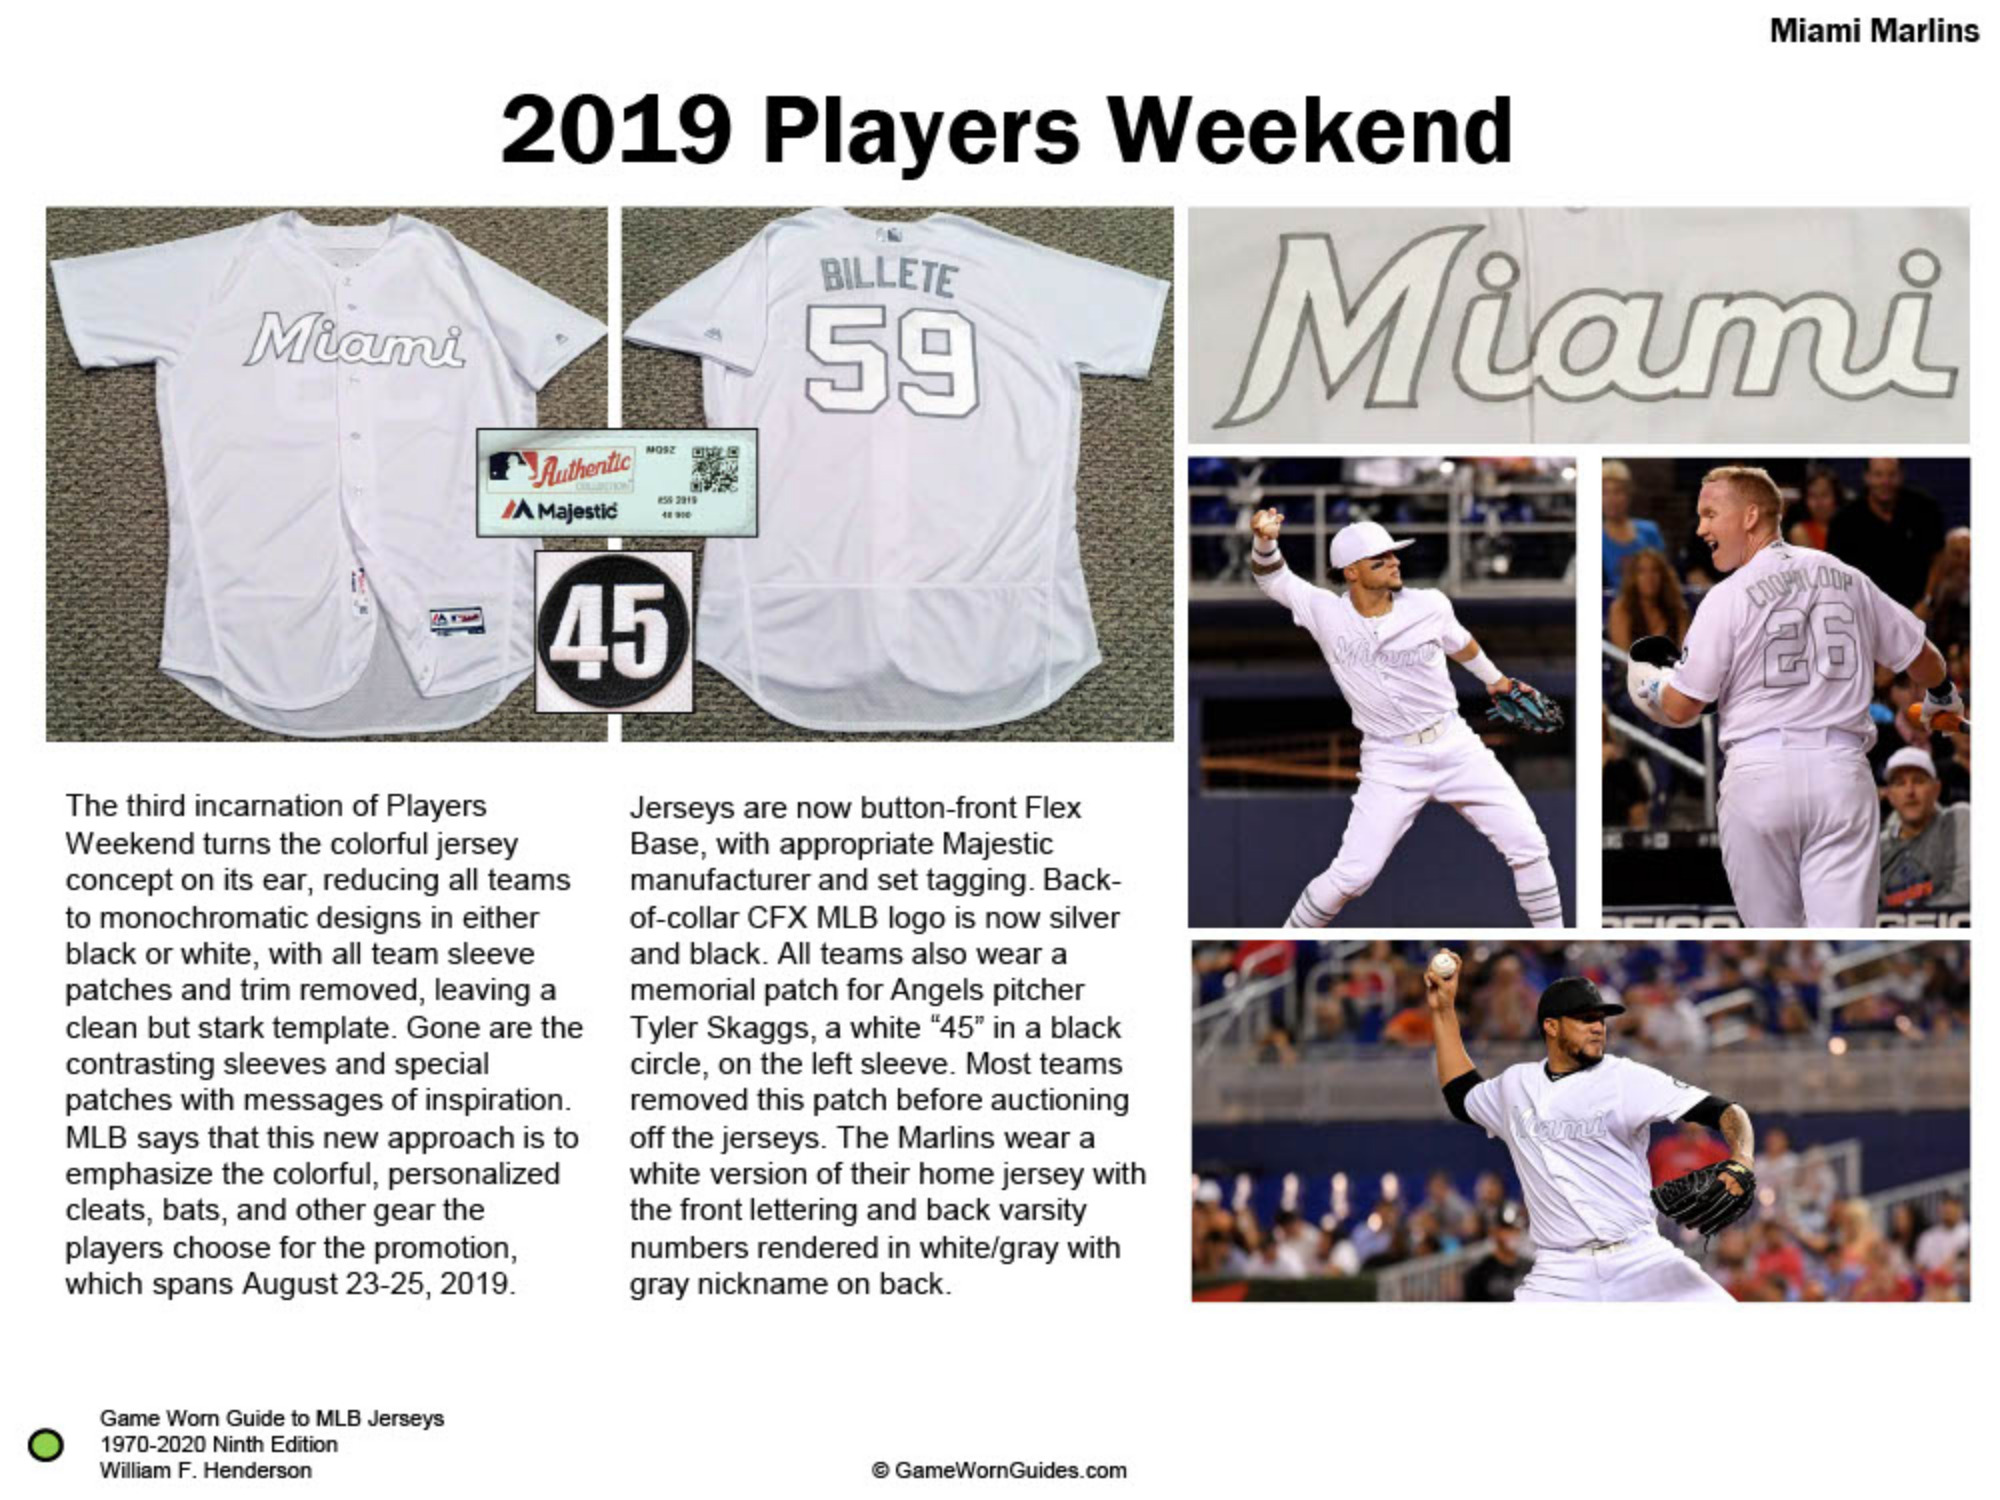 Game Worn Guide to Florida/Miami Marlins Jerseys (1993-2020)